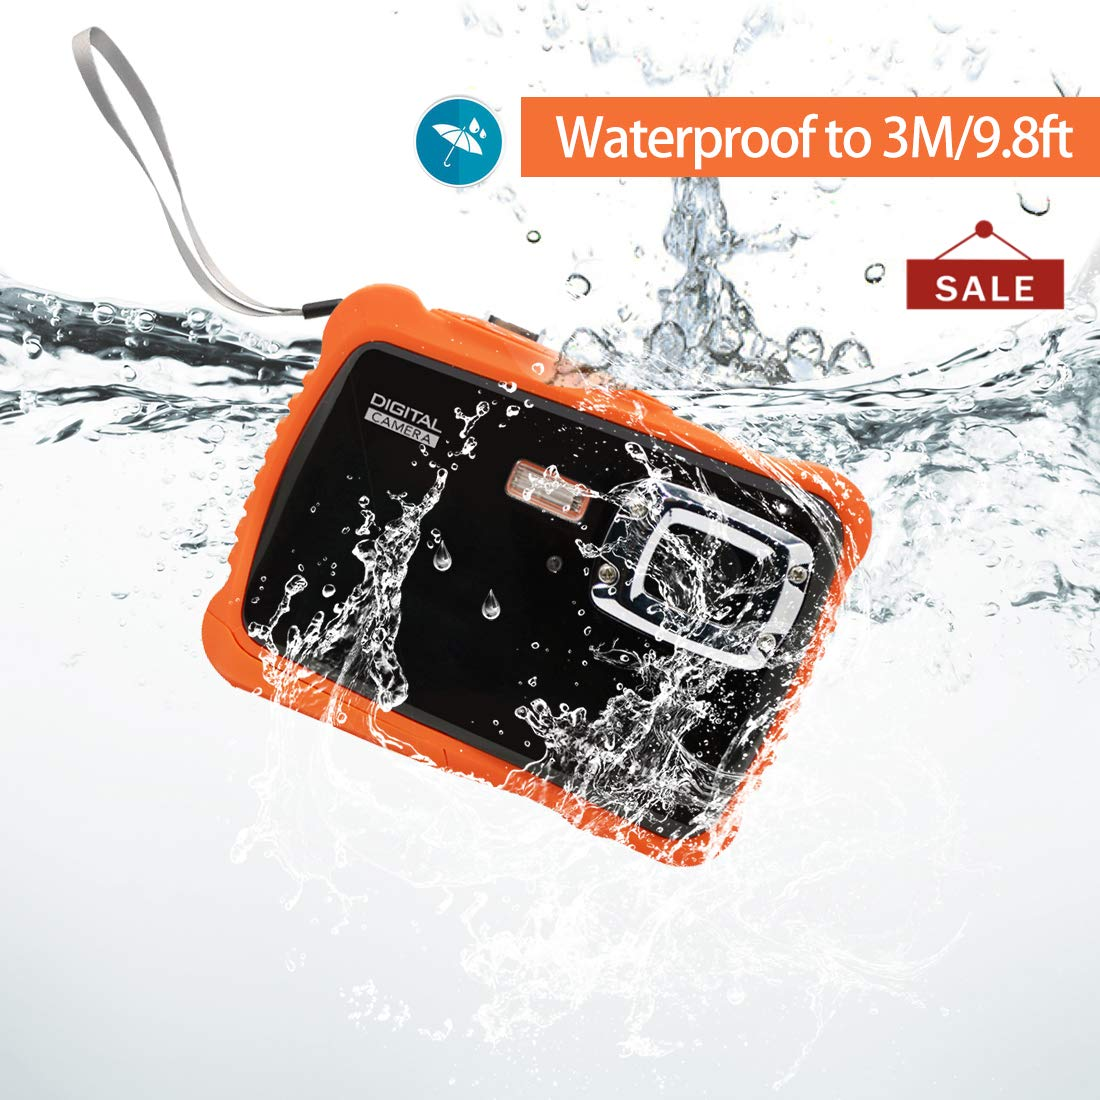 Underwater Action Digital Camera Camcorder for Kids, waterproof 3M/9.8ft, 5 MP CMOS 12MP 1080p, Orange